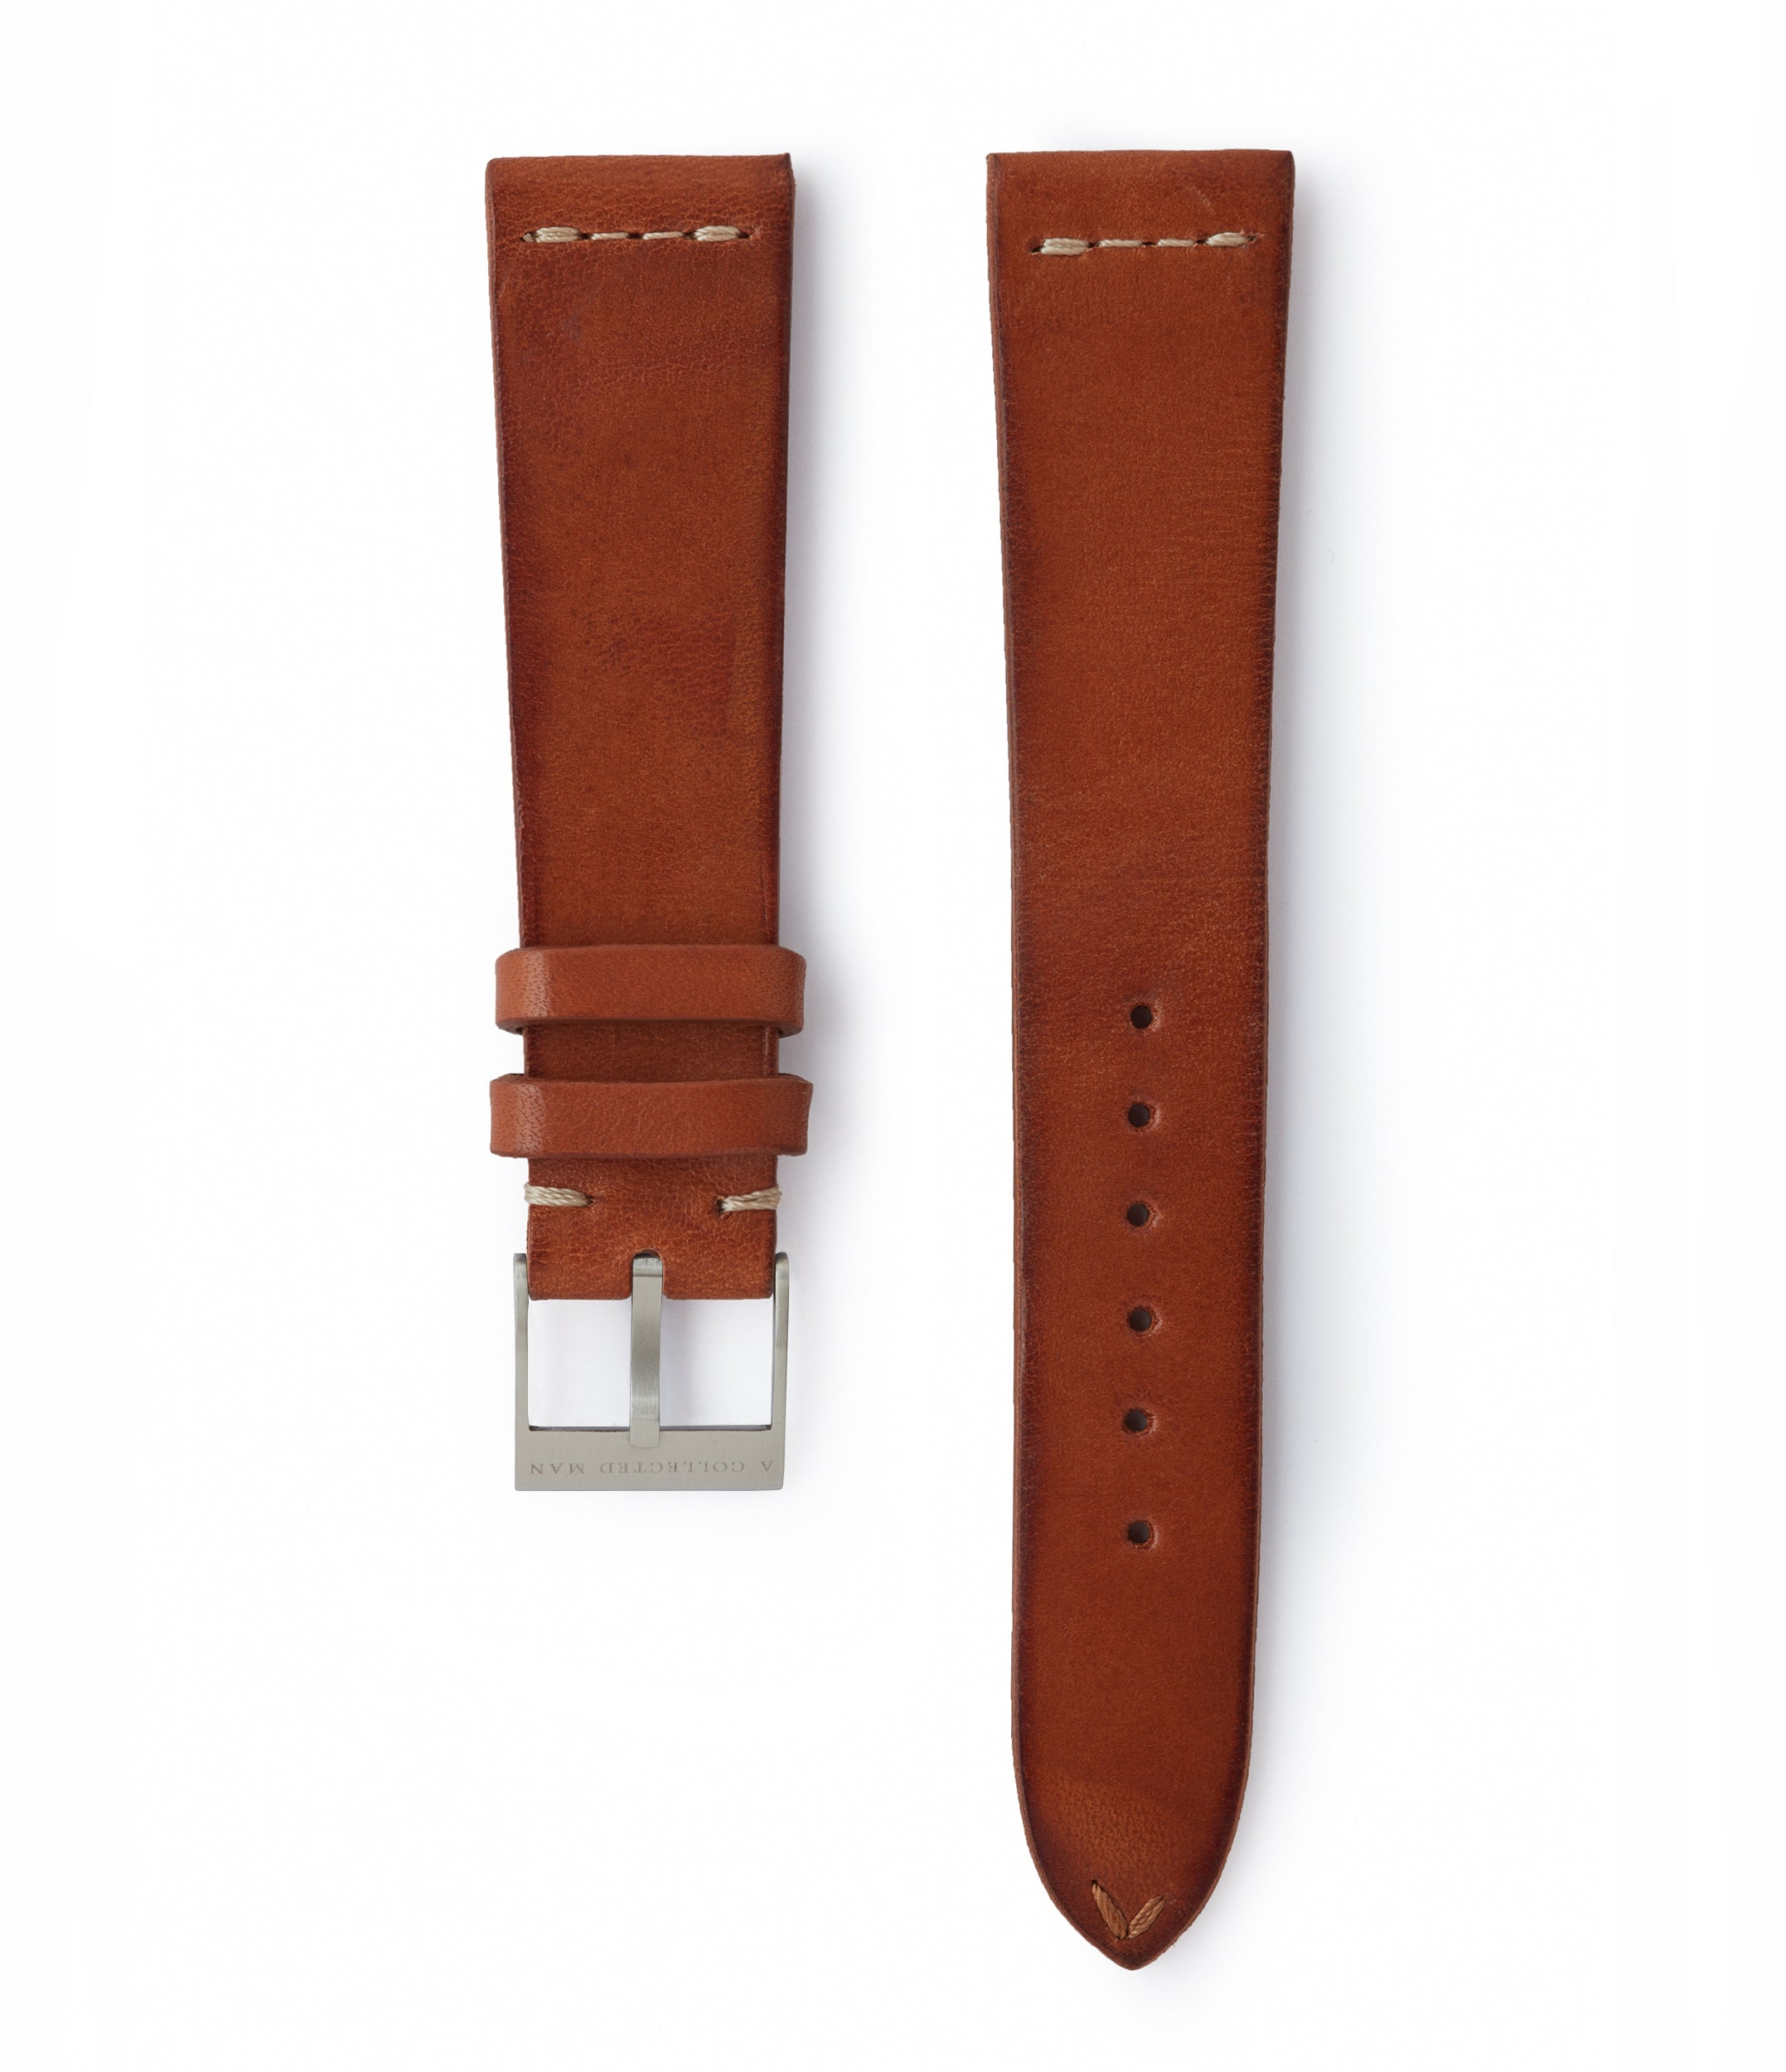 buy brown vintage leather watch strap 20mm Siena JPM for sale order online at A Collected Man London